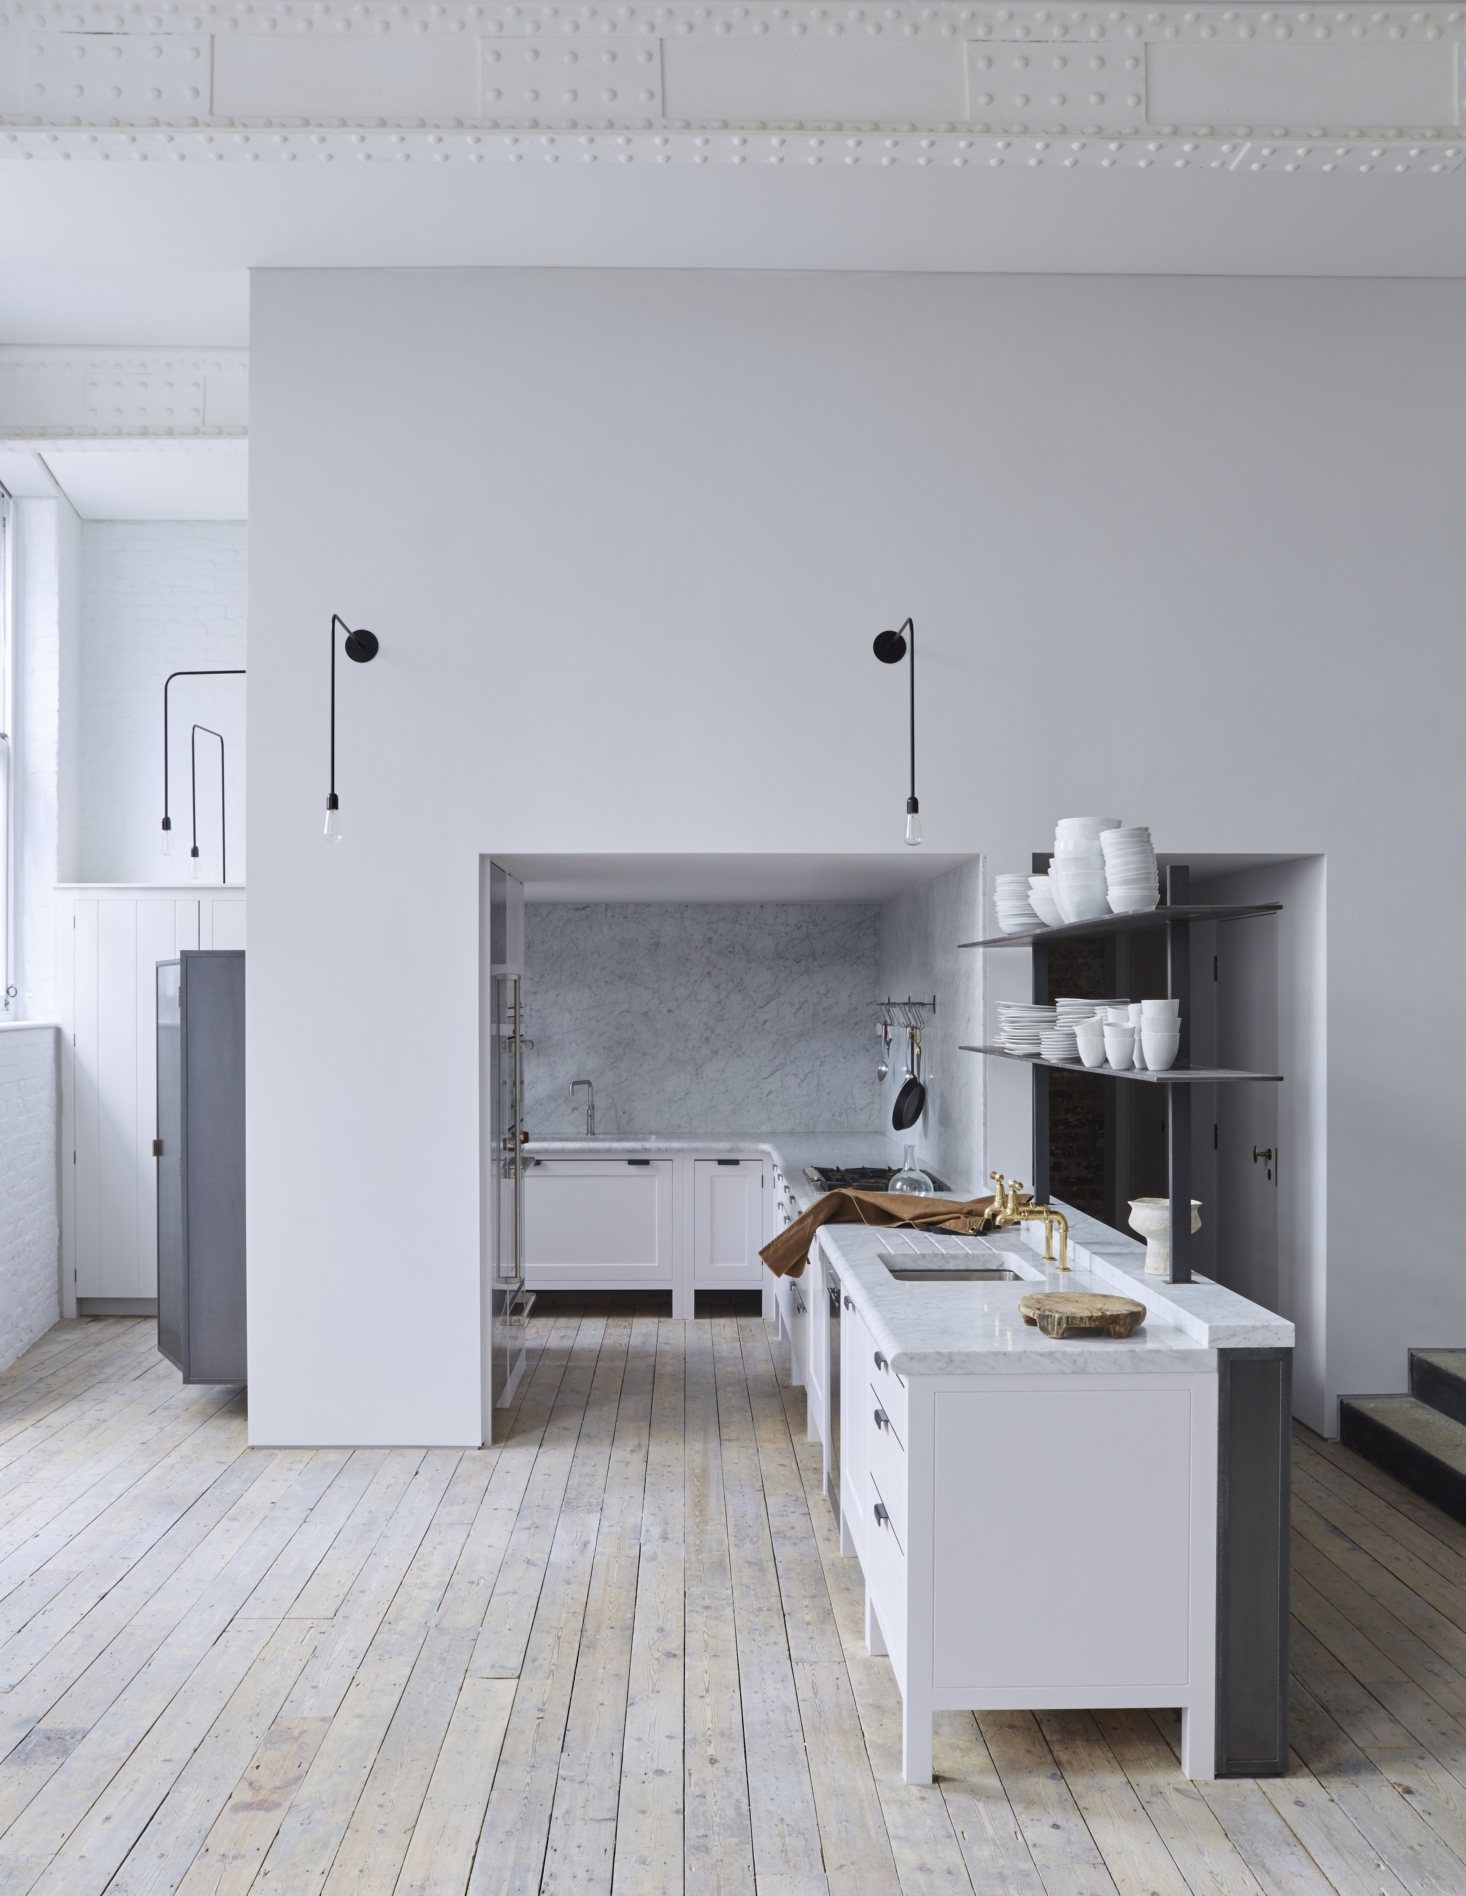 16 Favorite Solid Marble Kitchen Backsplashes, for Maximum Drama #plainenglishkitchen Seth Stein Architects revitalized a former schoolhouse in London by adding a Plain English kitchen, and clad two entire walls in marble. Photograph courtesy of Plain English; see the full kitchen in Kitchen of the Week: Plain English Goes Contemporary in a Converted London Schoolhouse. #plainenglishkitchen